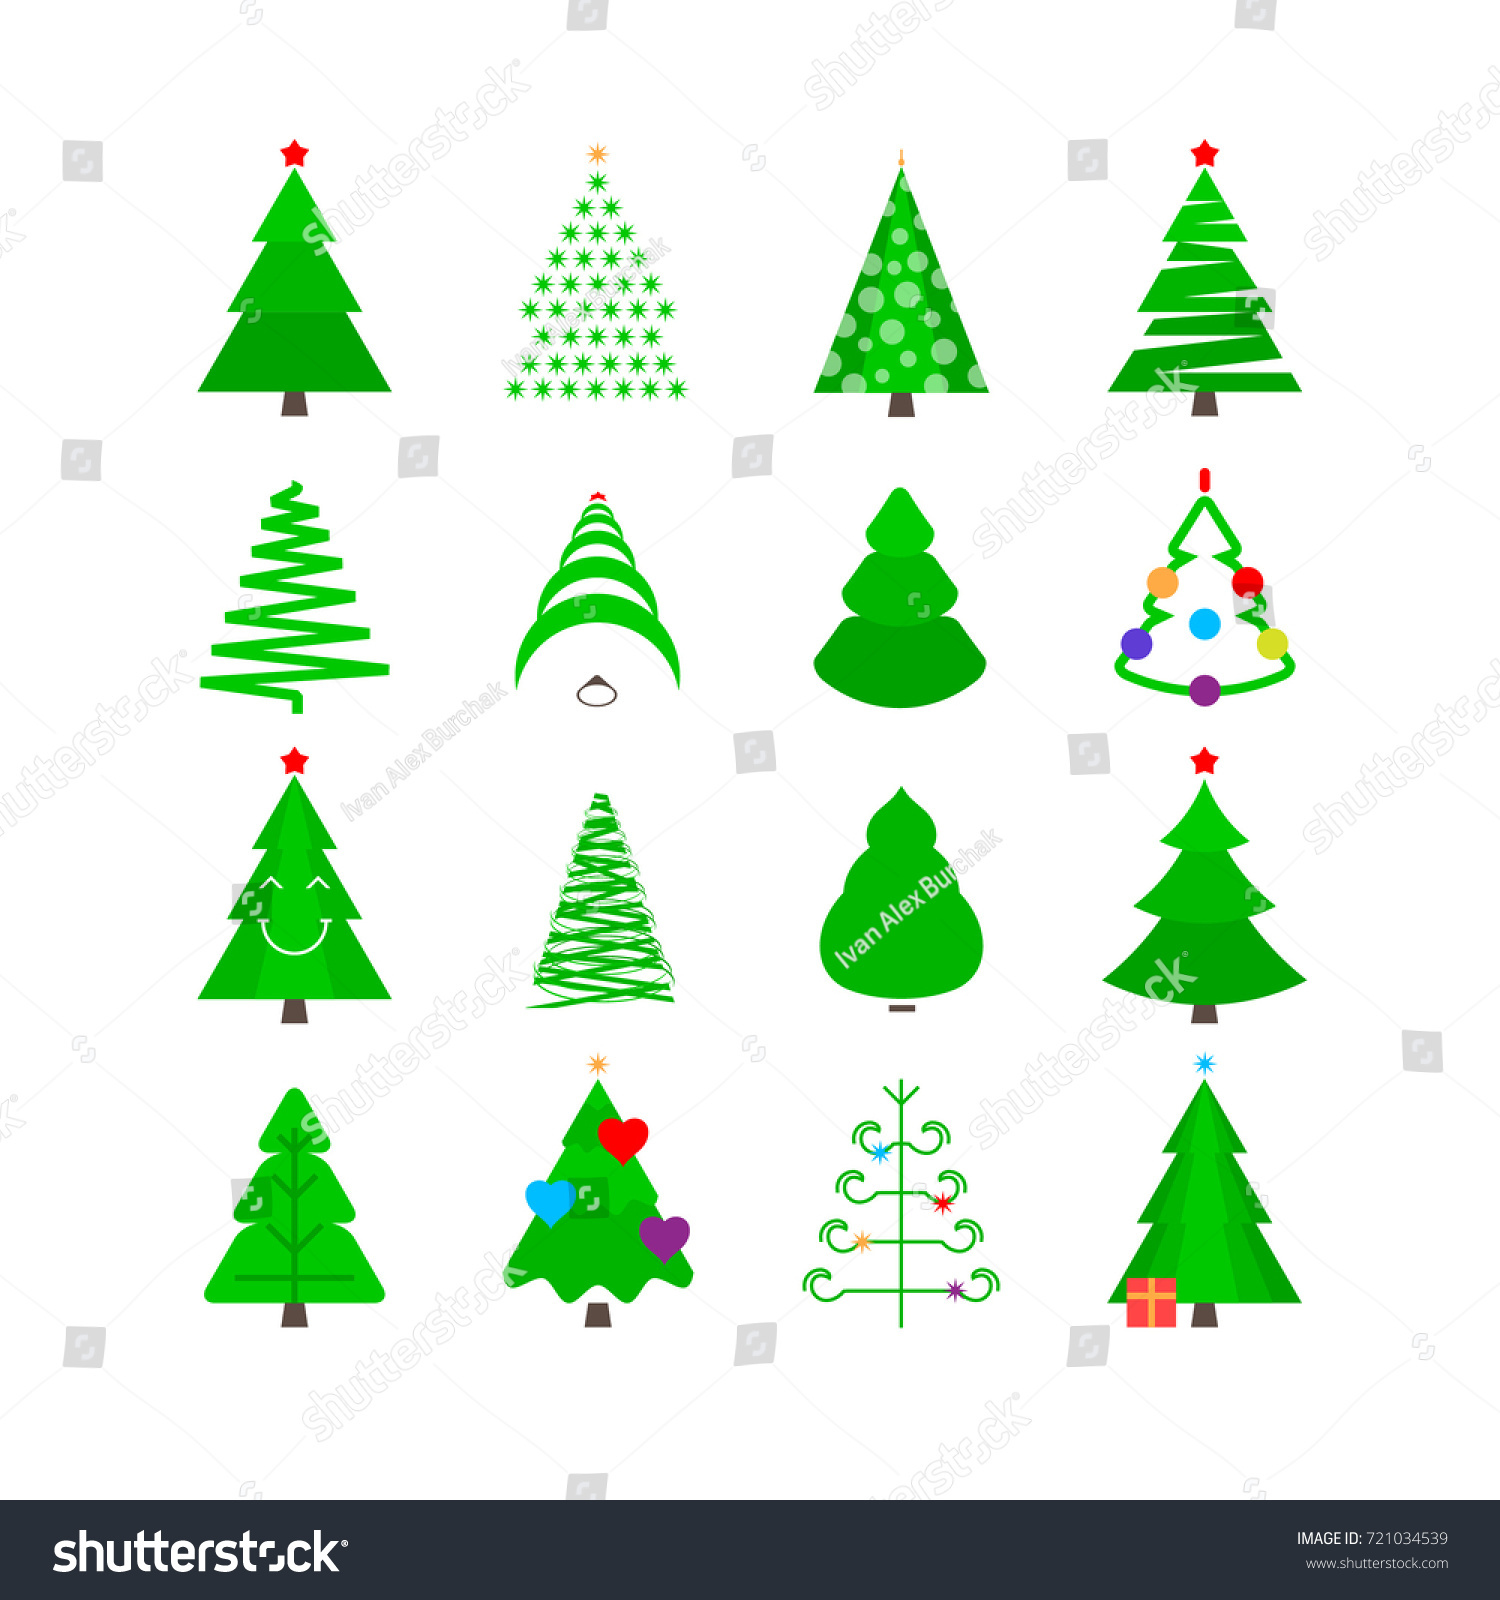 christmas tree vector icon set christmas trees in different forms with toys green stylized - Christmas Tree Types